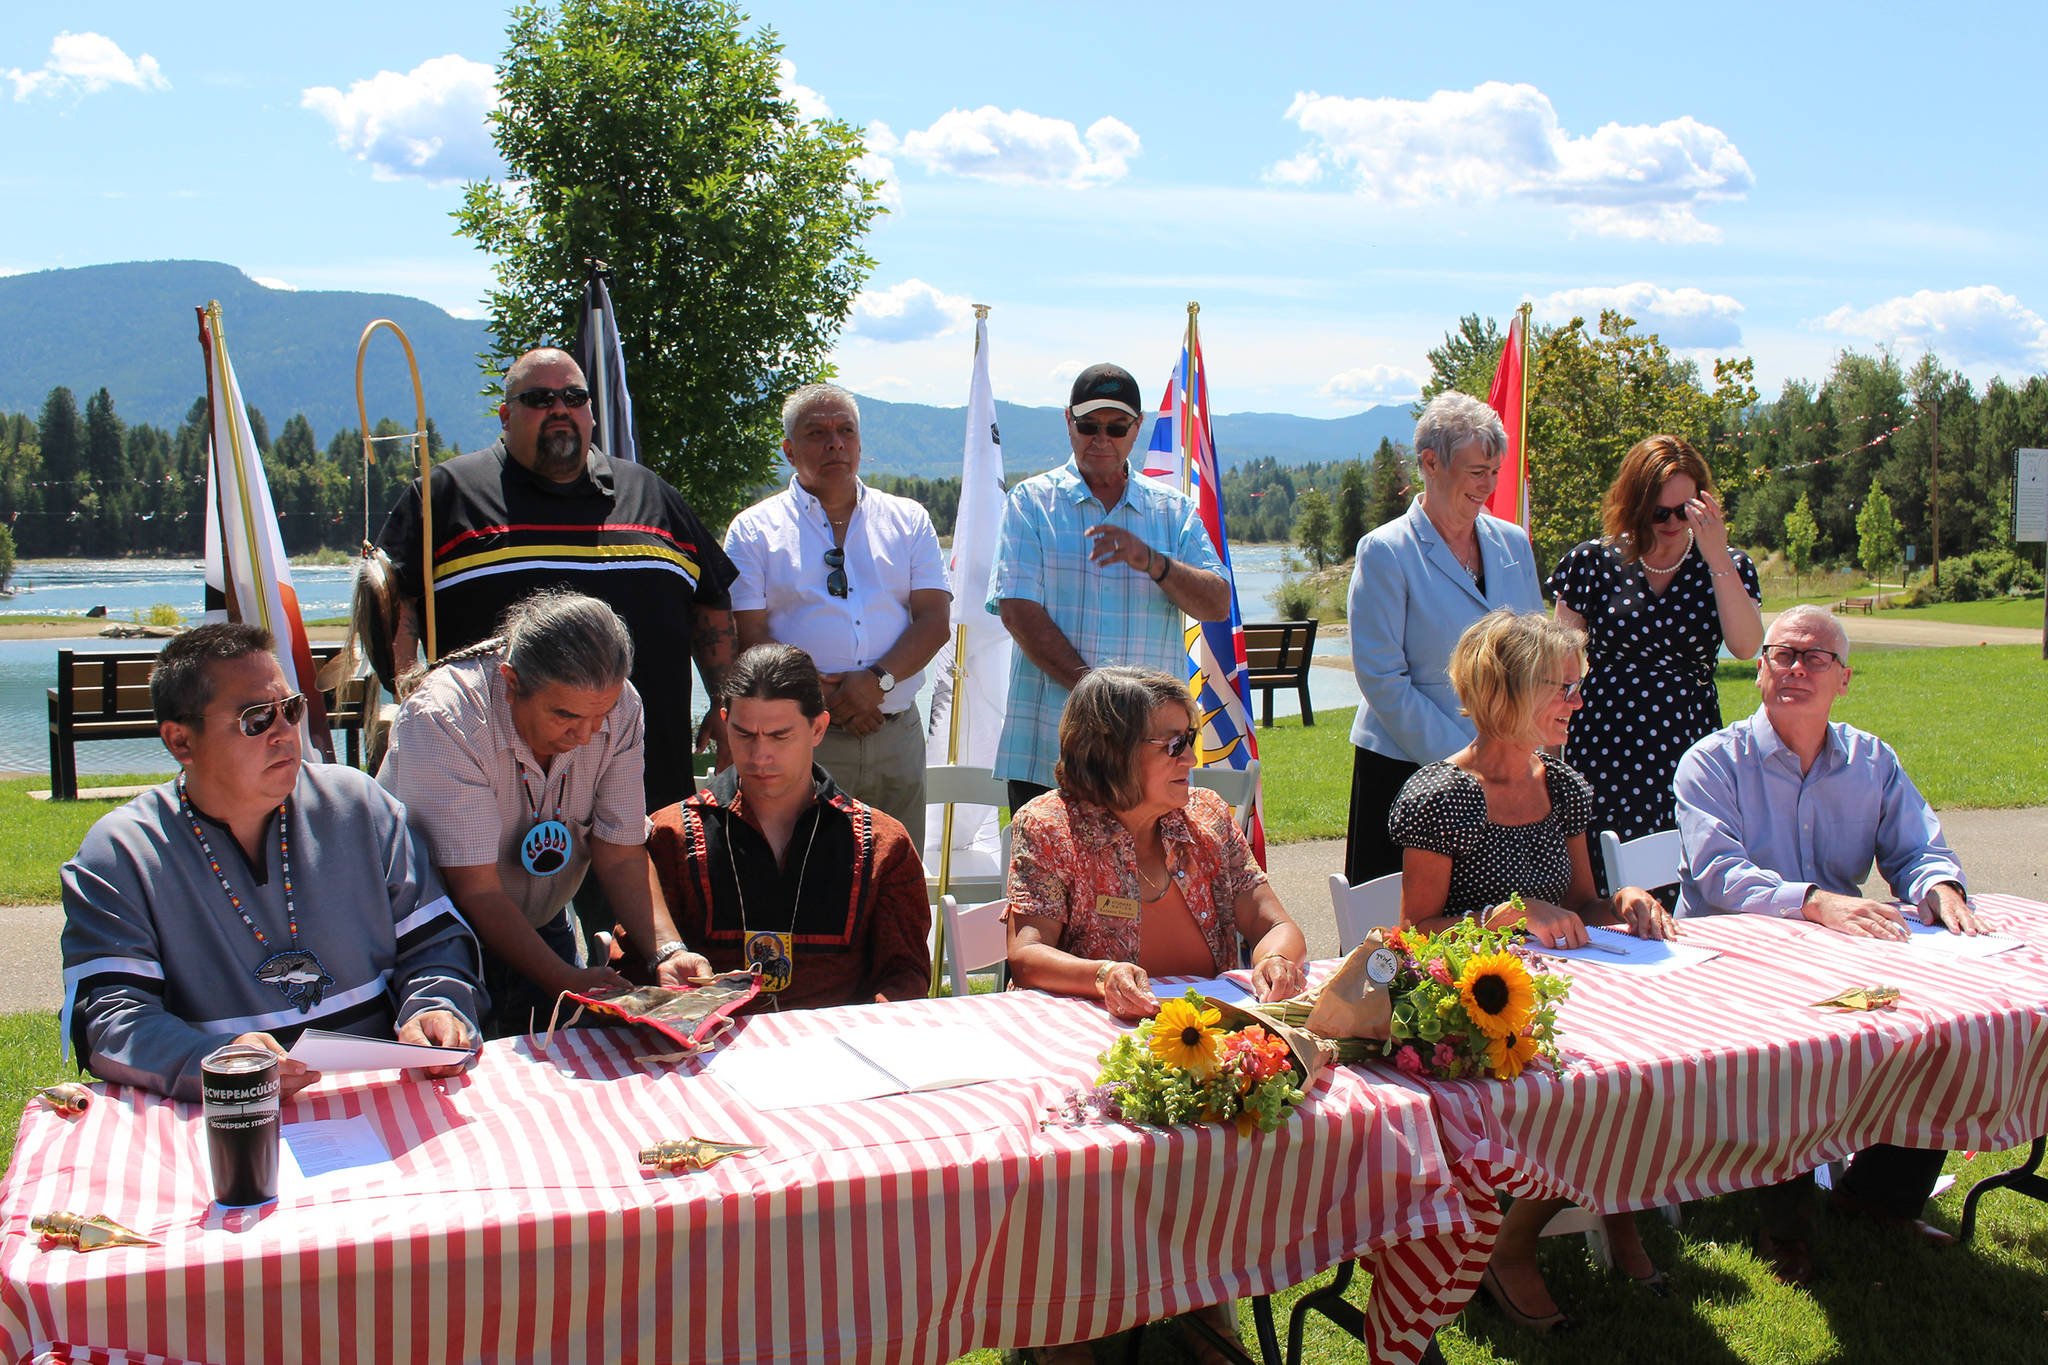 Representatives from Ottawa, B.C. and aboriginal organizations signed a treaty Monday on the banks of the Columbia River. Photo by: John Boivin